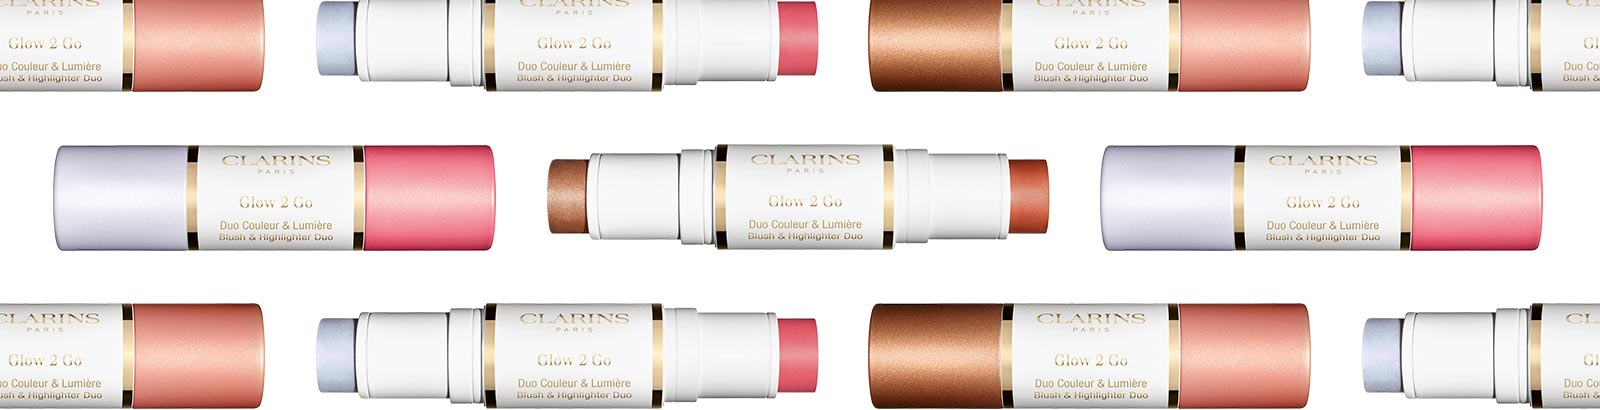 Glow All Out! Glow 2 Go illuminates skin with light-catching color!